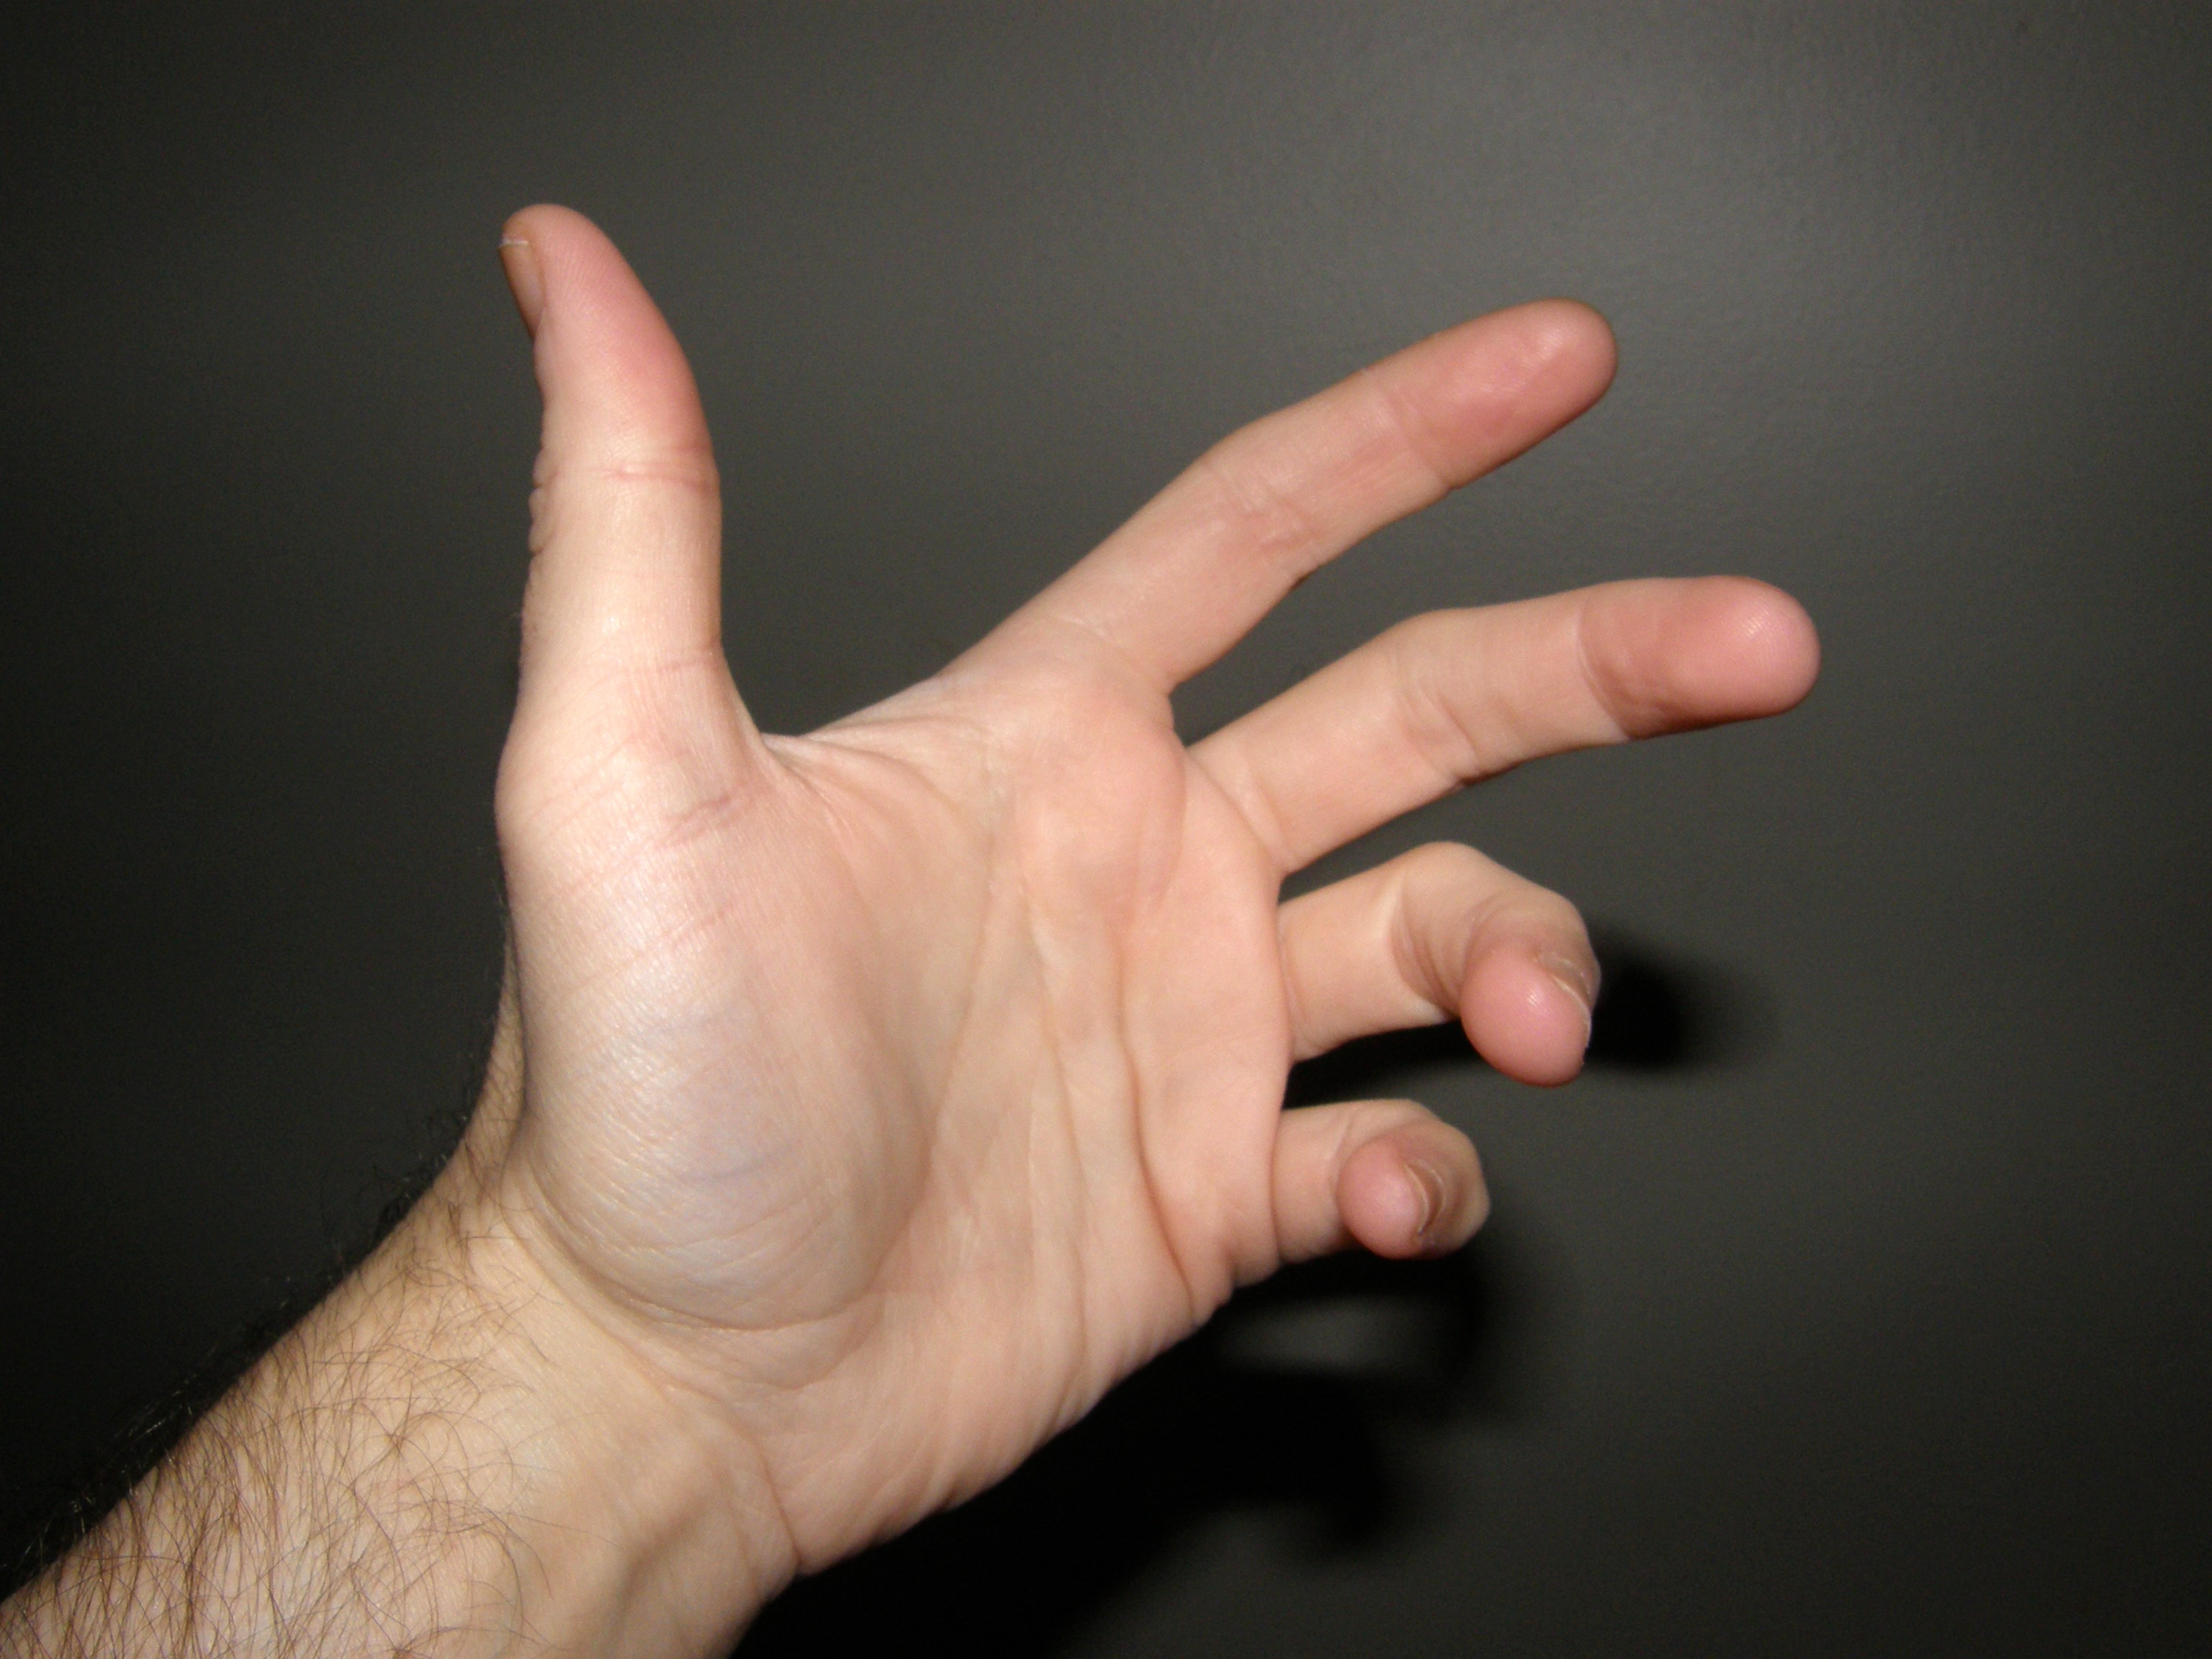 Use hand gestures in TV interviews - Build Book Buzz